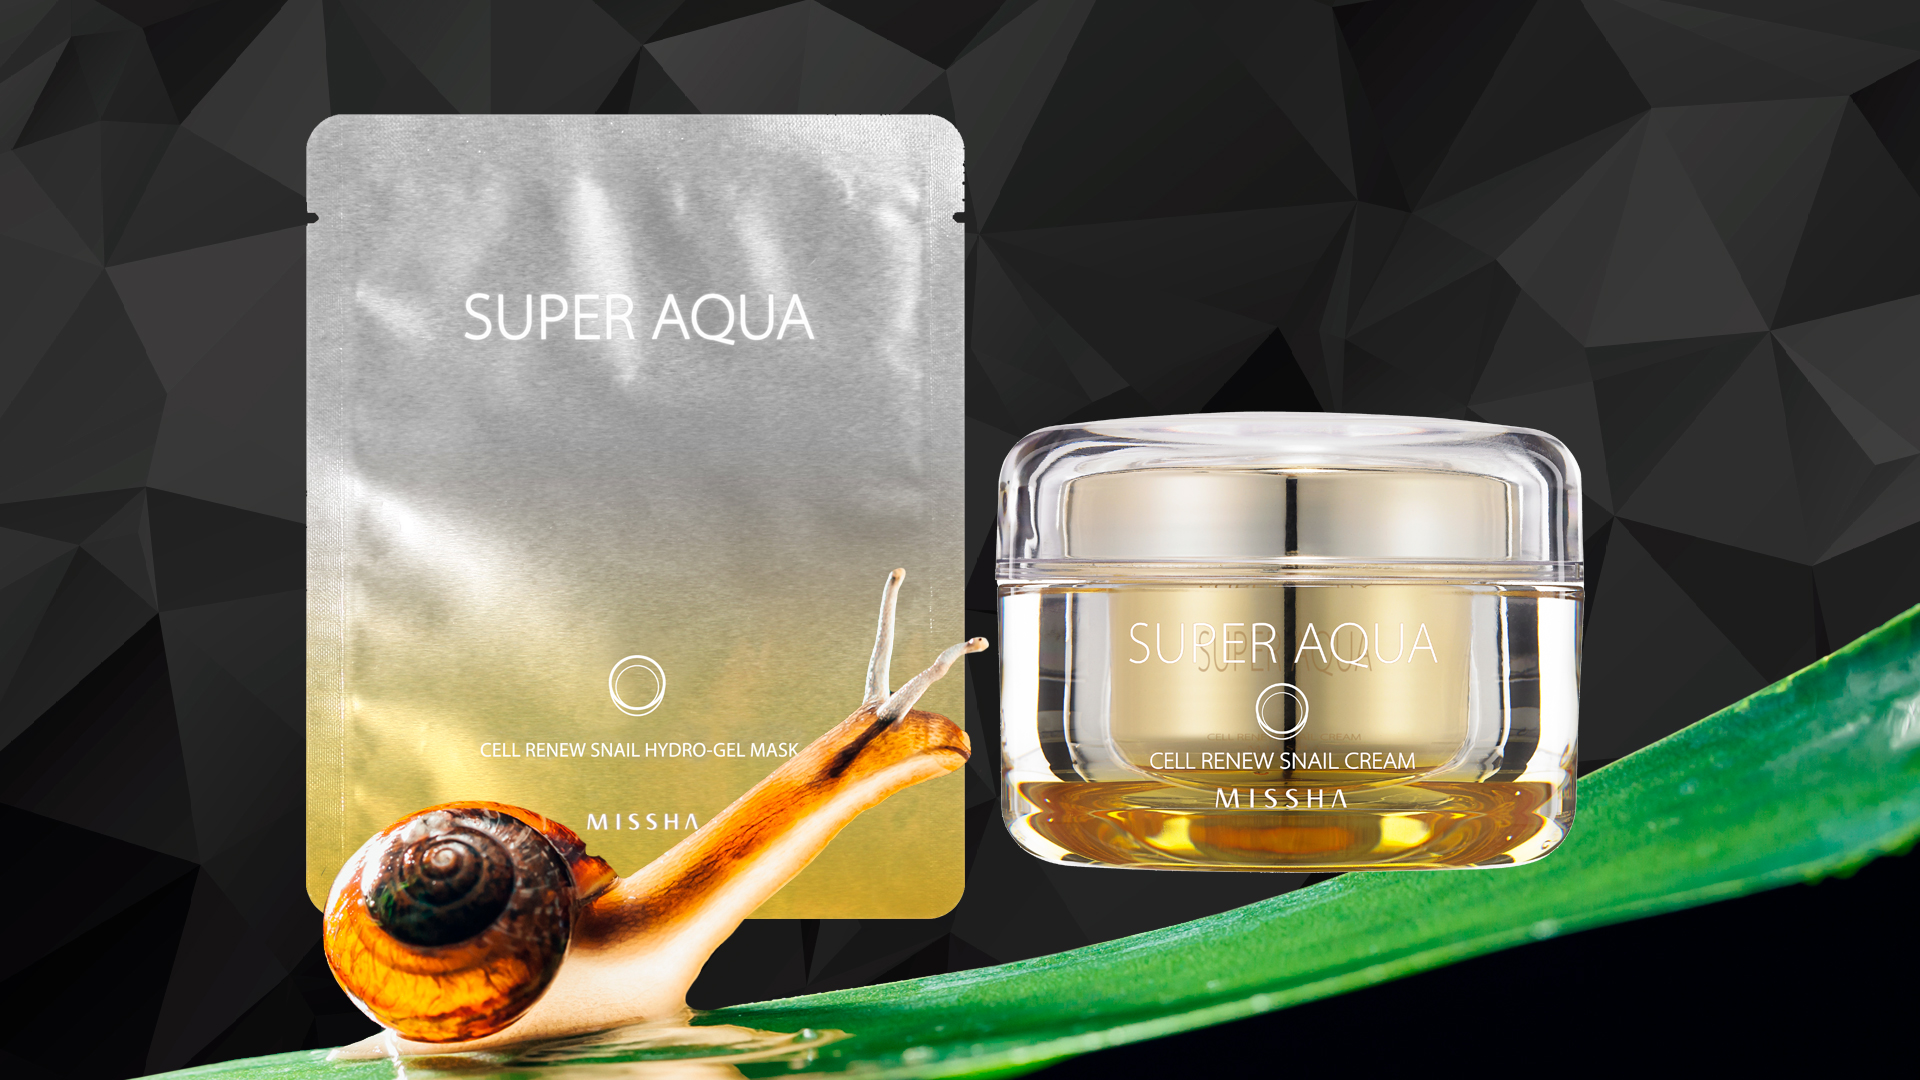 Missha Super Aqua Cell Renew